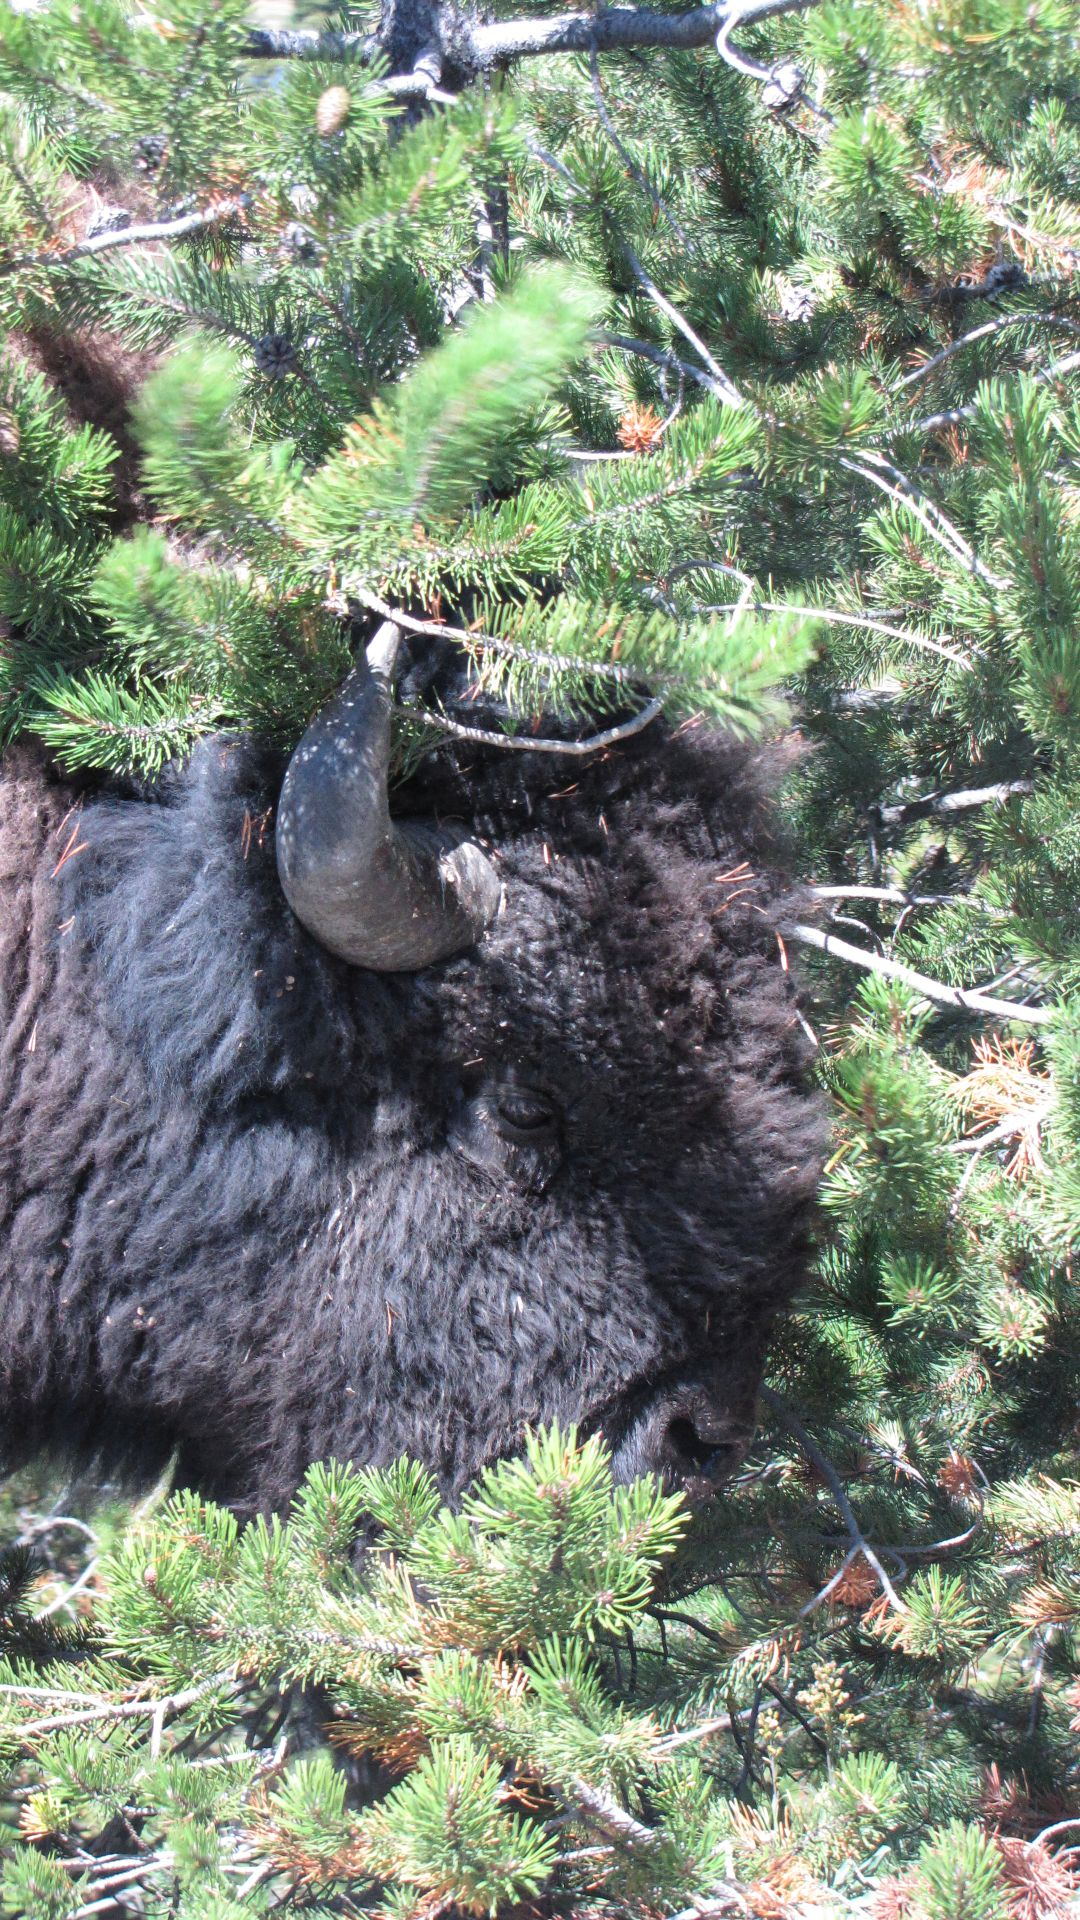 Yellowstone Nat Pk, WY, USA - Bison in \'tree-perm\' catastrophe